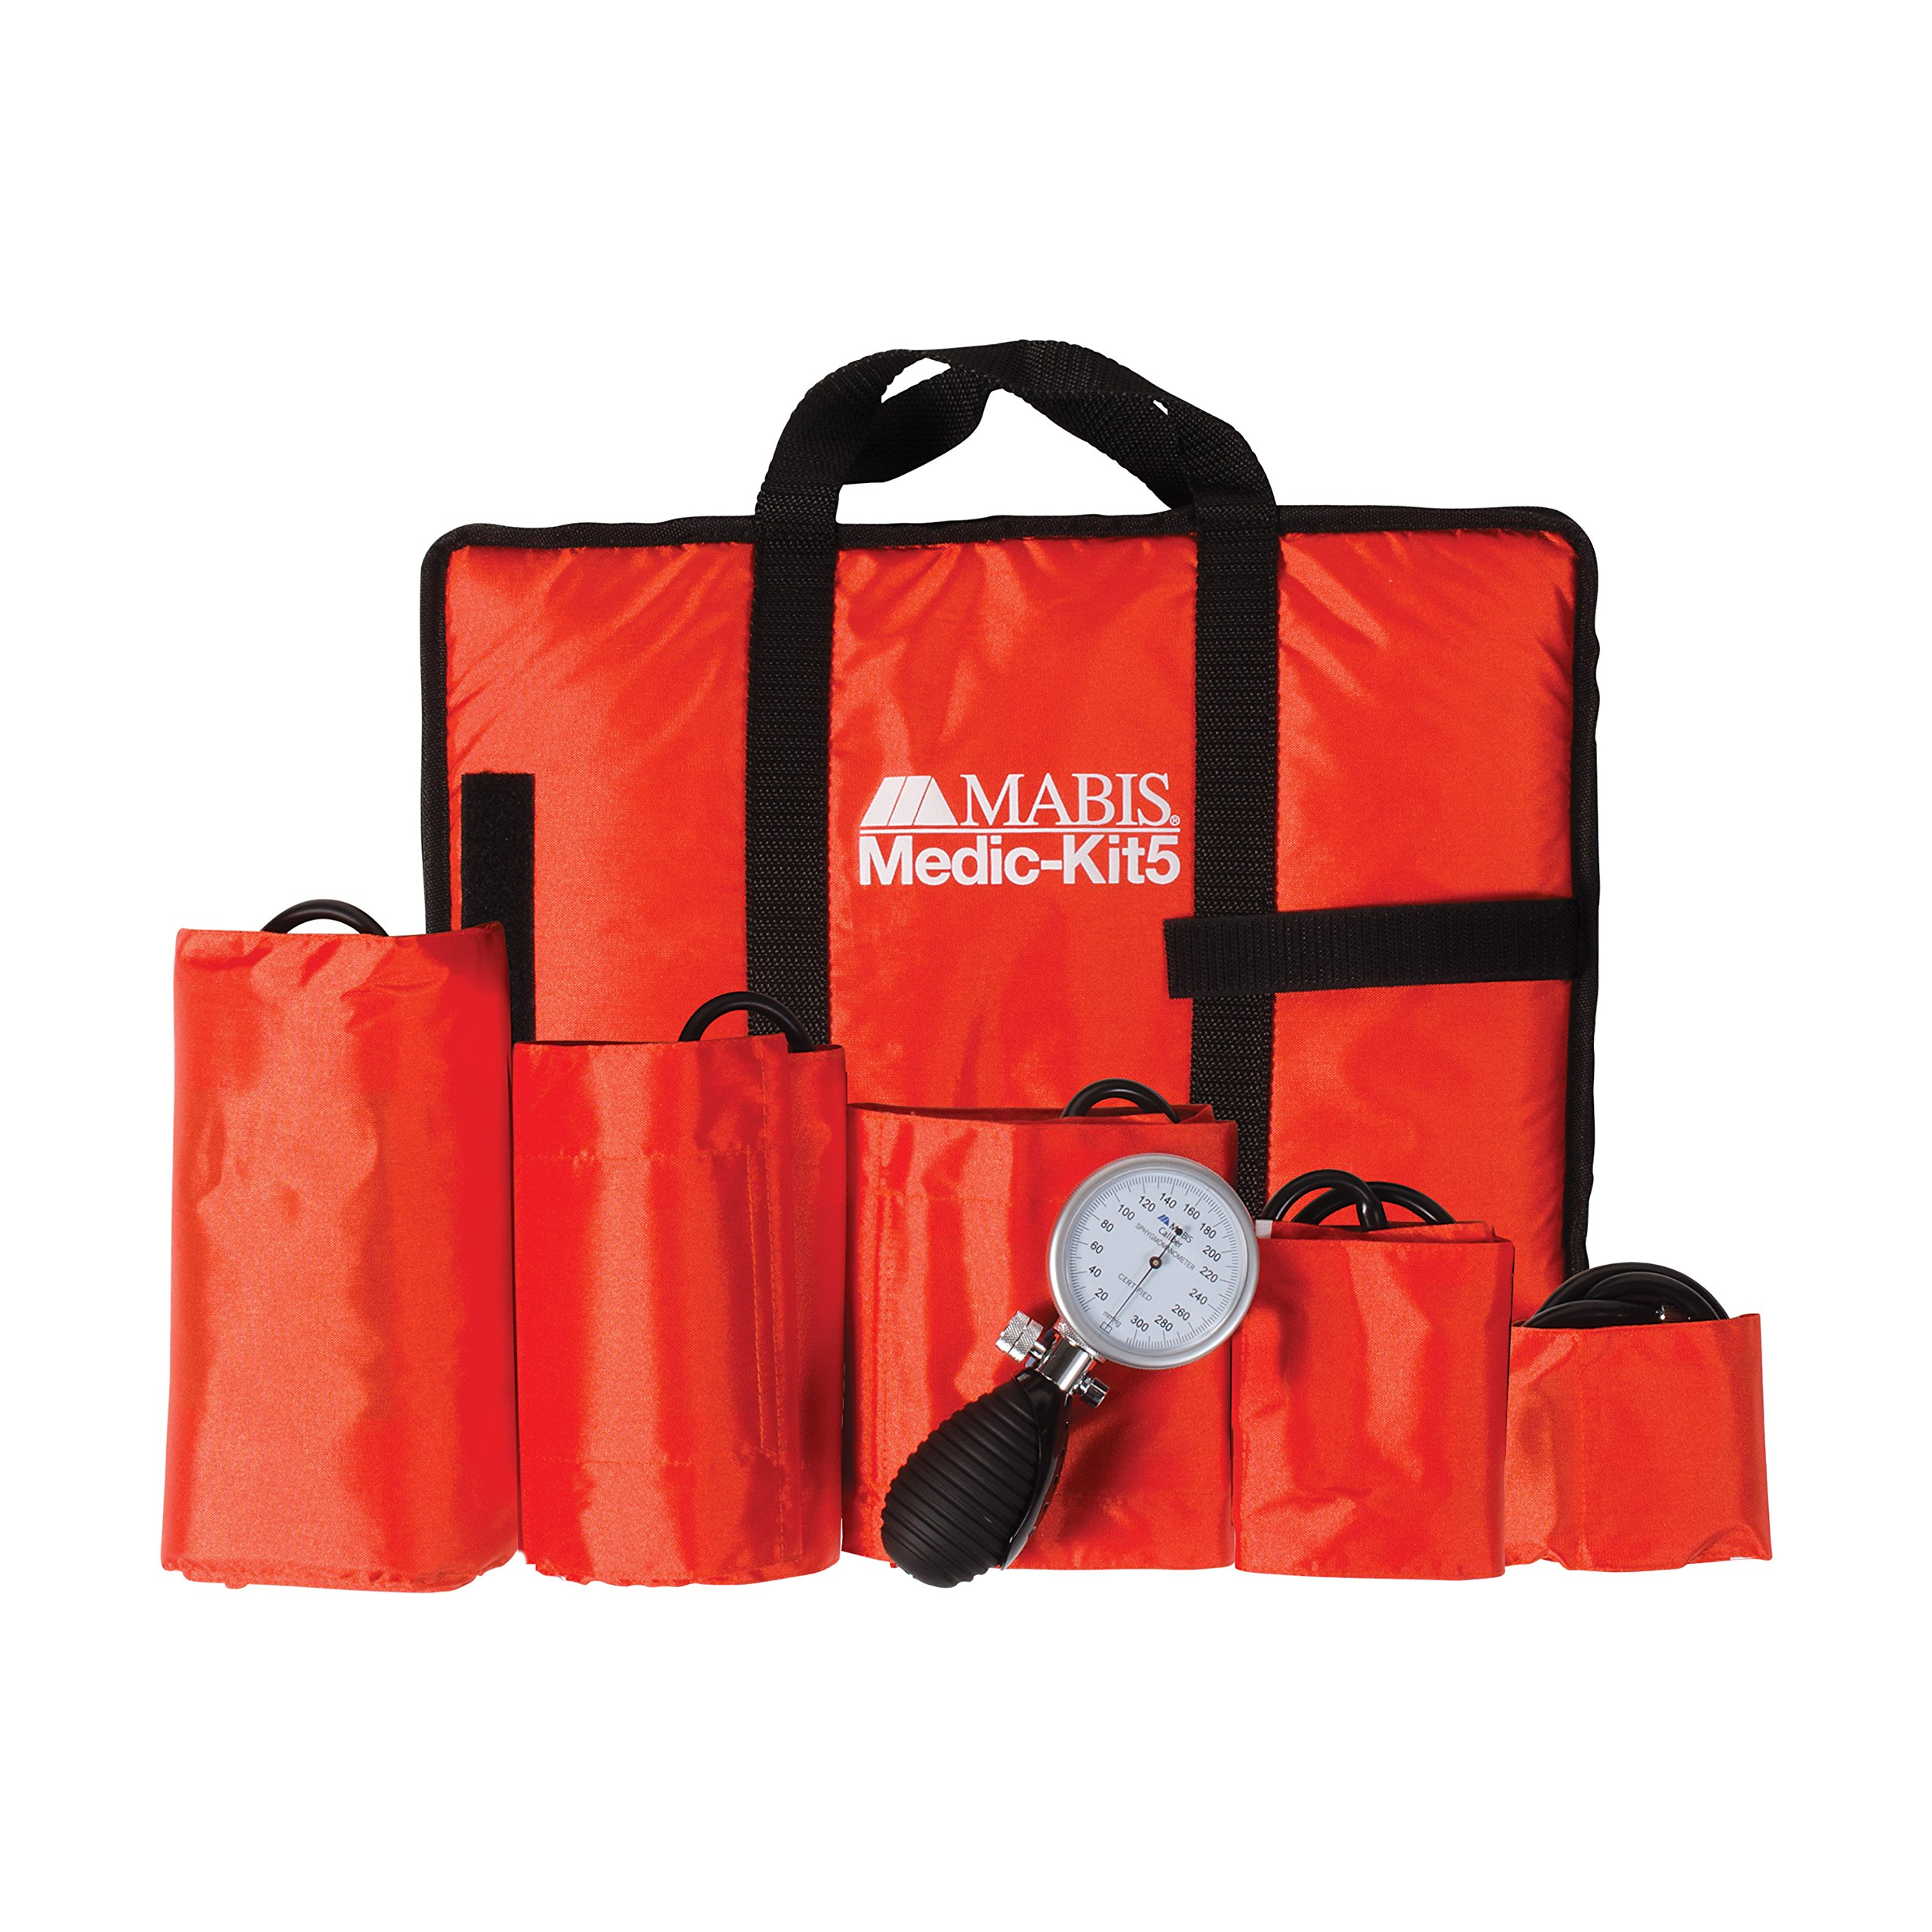 MABIS Medic-Kit5 EMT and Paramedic First Aid Kit with 5 Calibrated Nylon Blood Pressure Cuffs, Orange